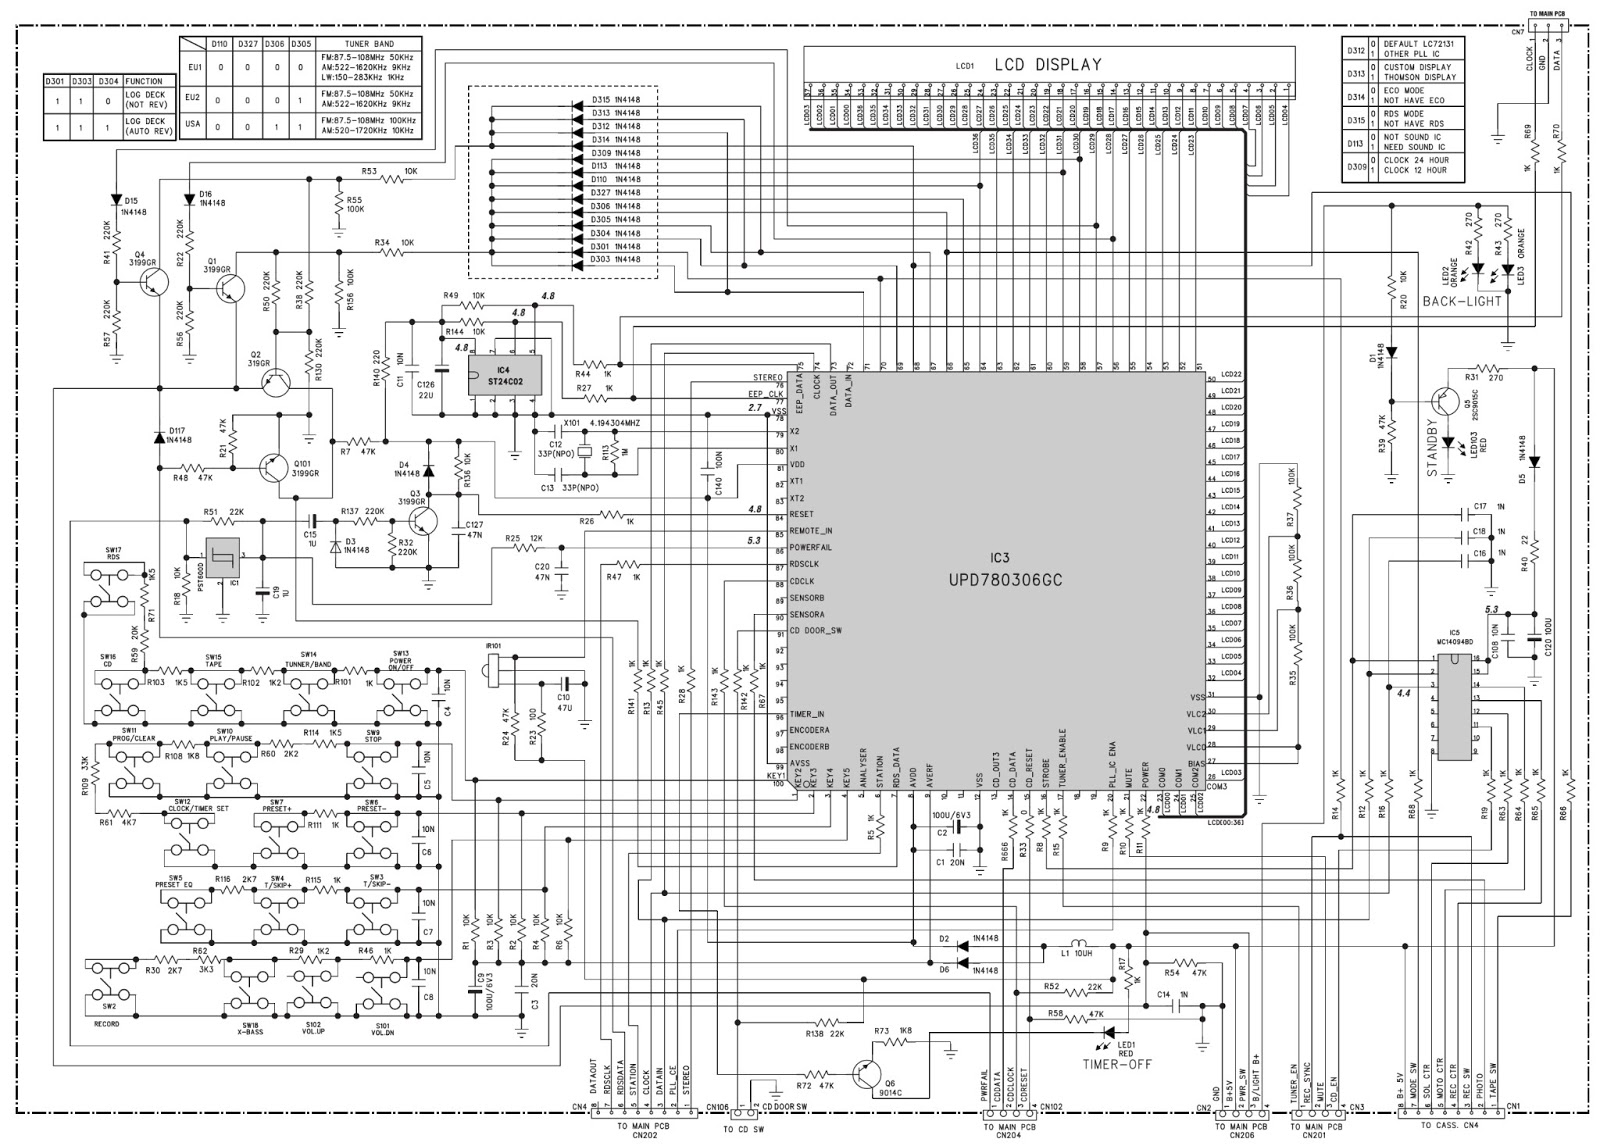 untitled.bmp yamaha _ thomson cs 100 cs 105 schematic diagram [circuit yamaha schematic diagram at eliteediting.co